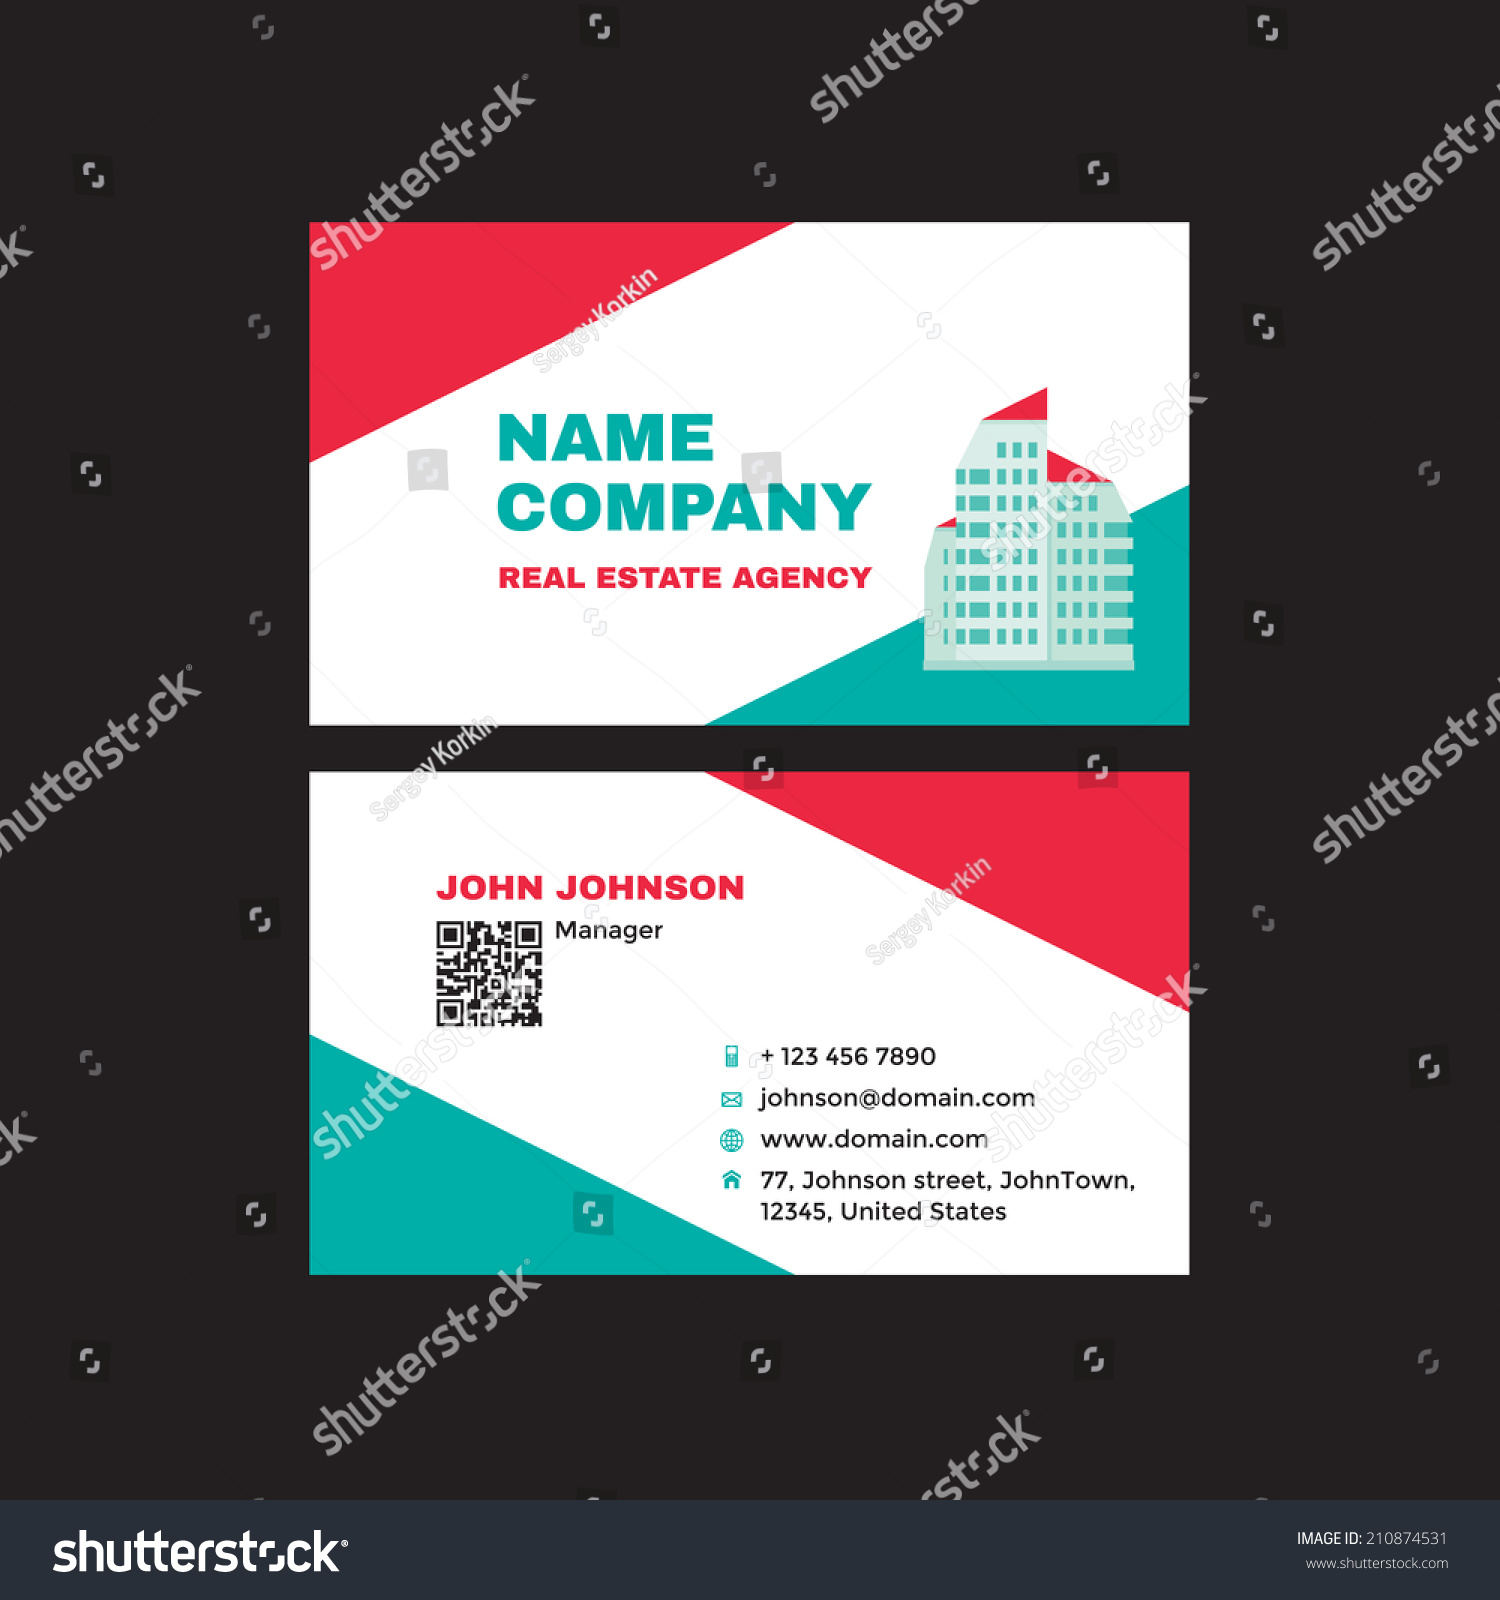 Real Estate Business Visit Card Creative Stock Vector 210874531 ...